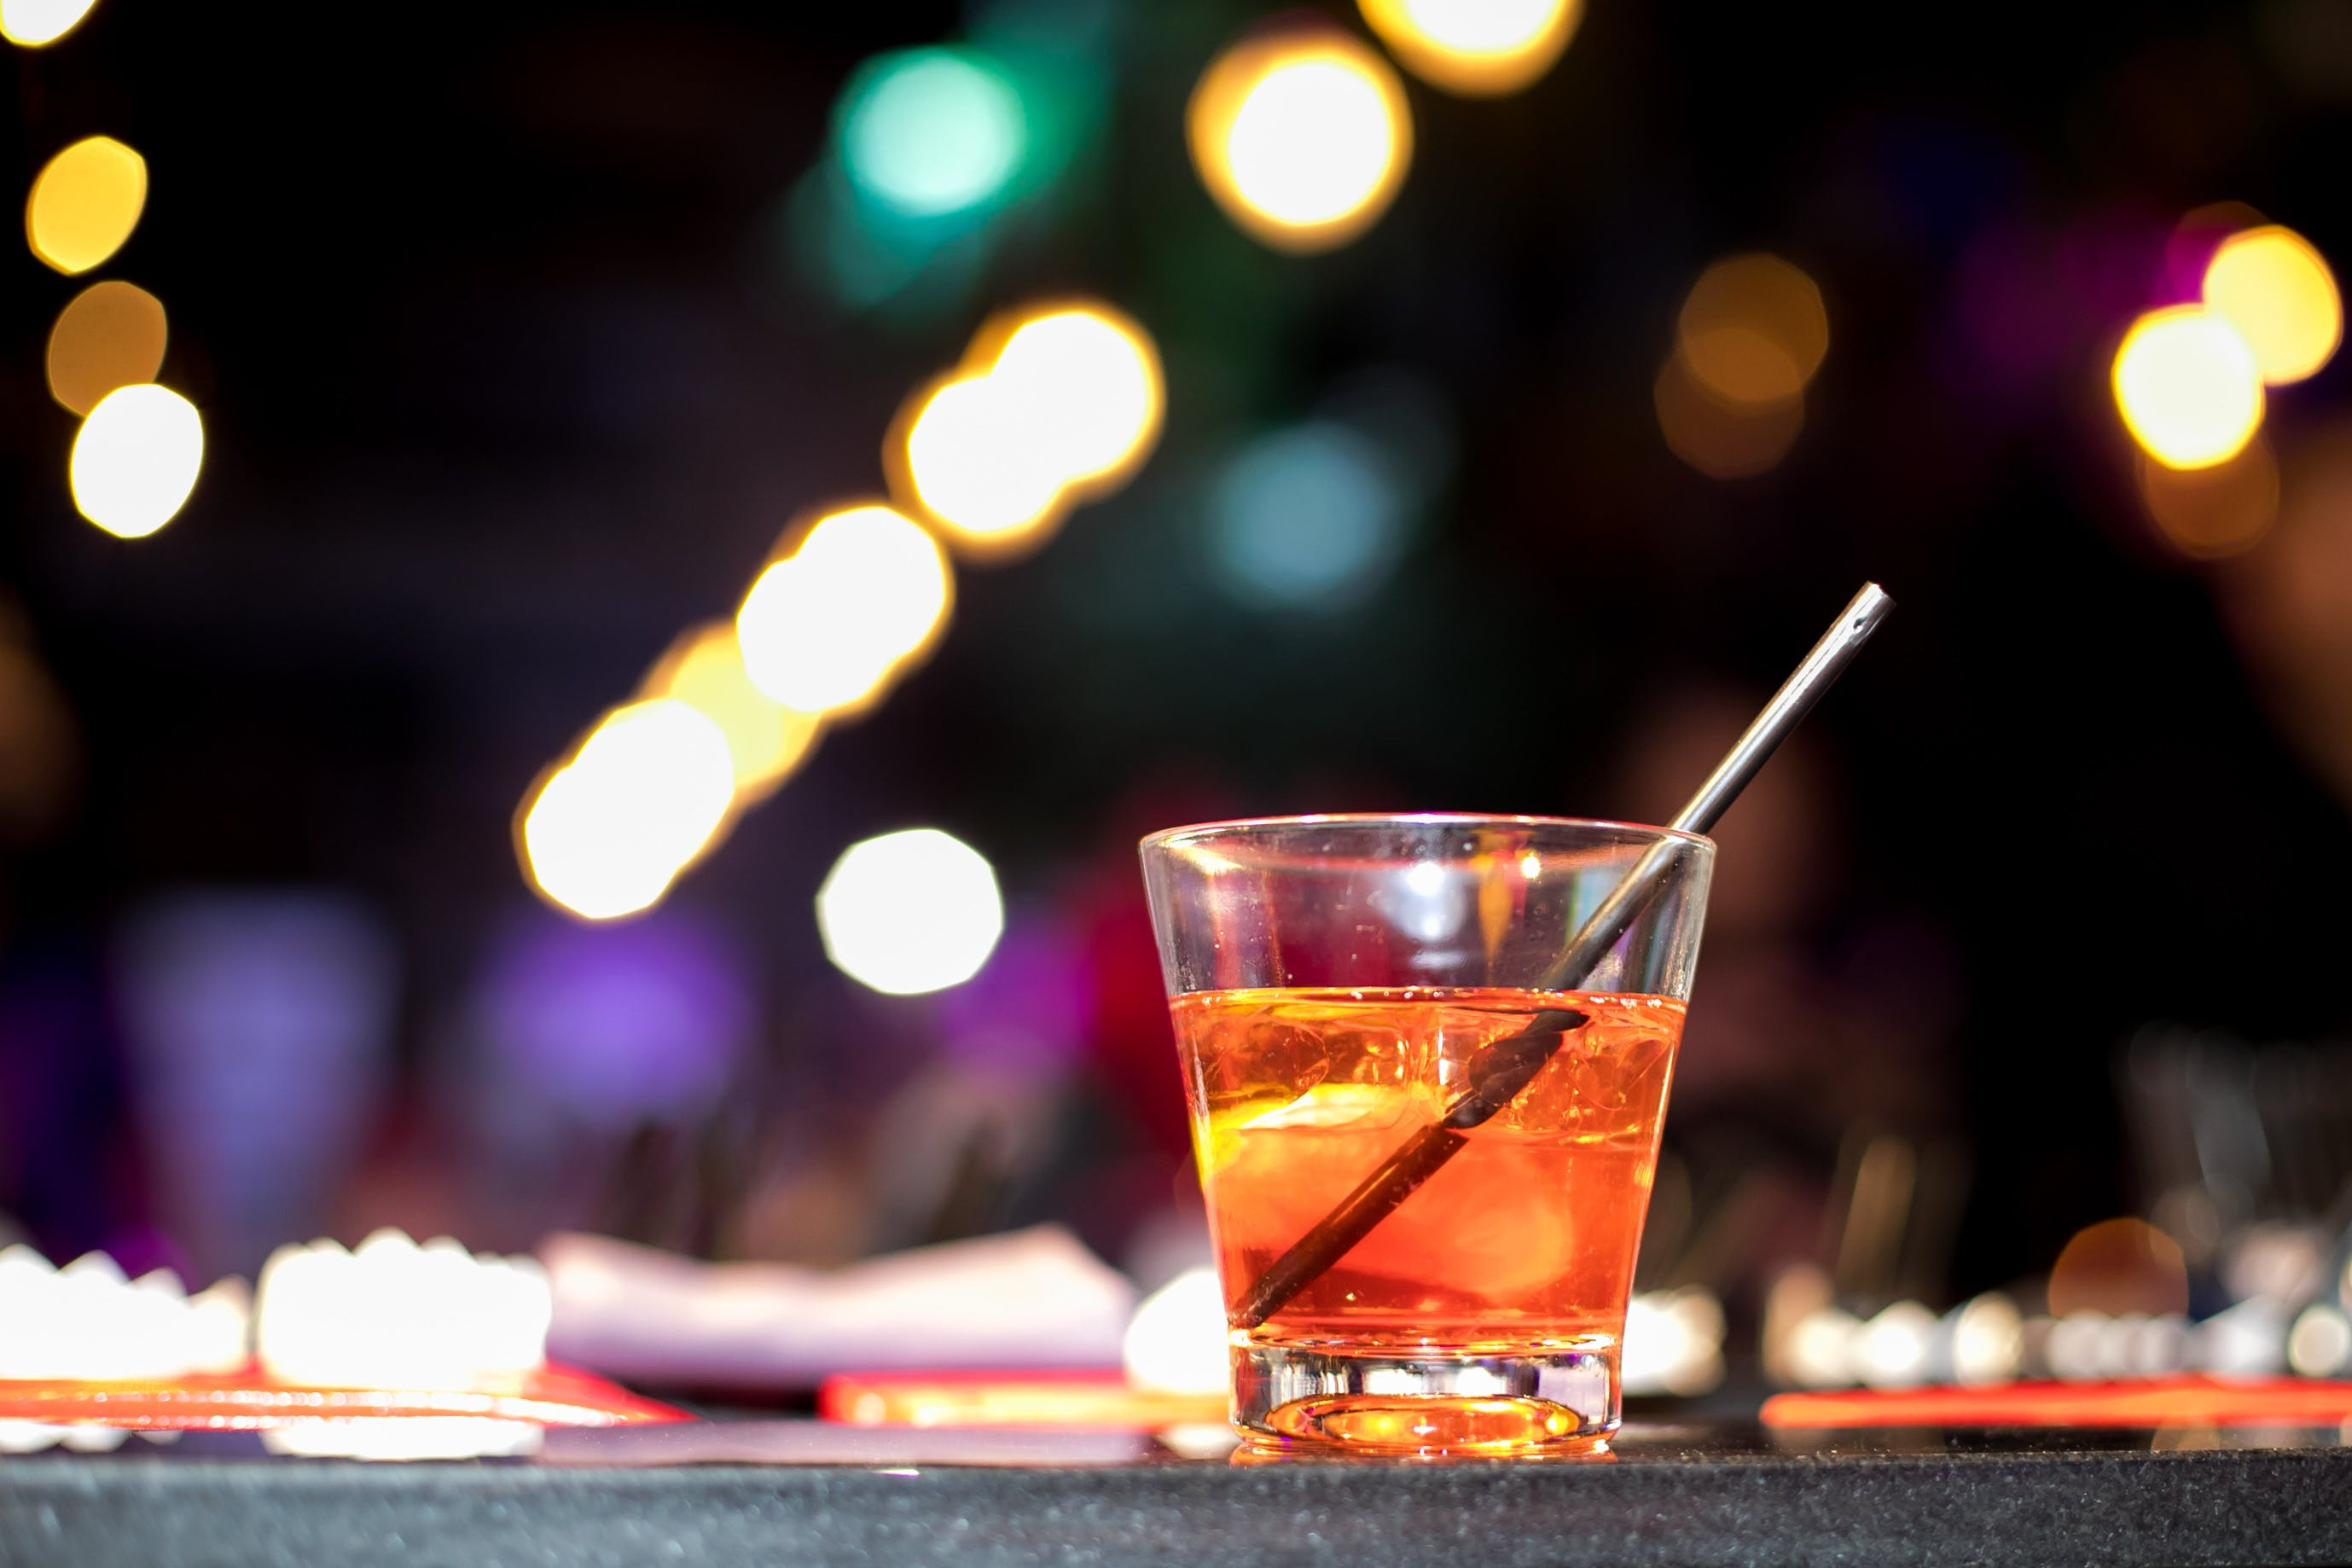 Free stock photo of alcohol, bokeh, cocktail glass, light